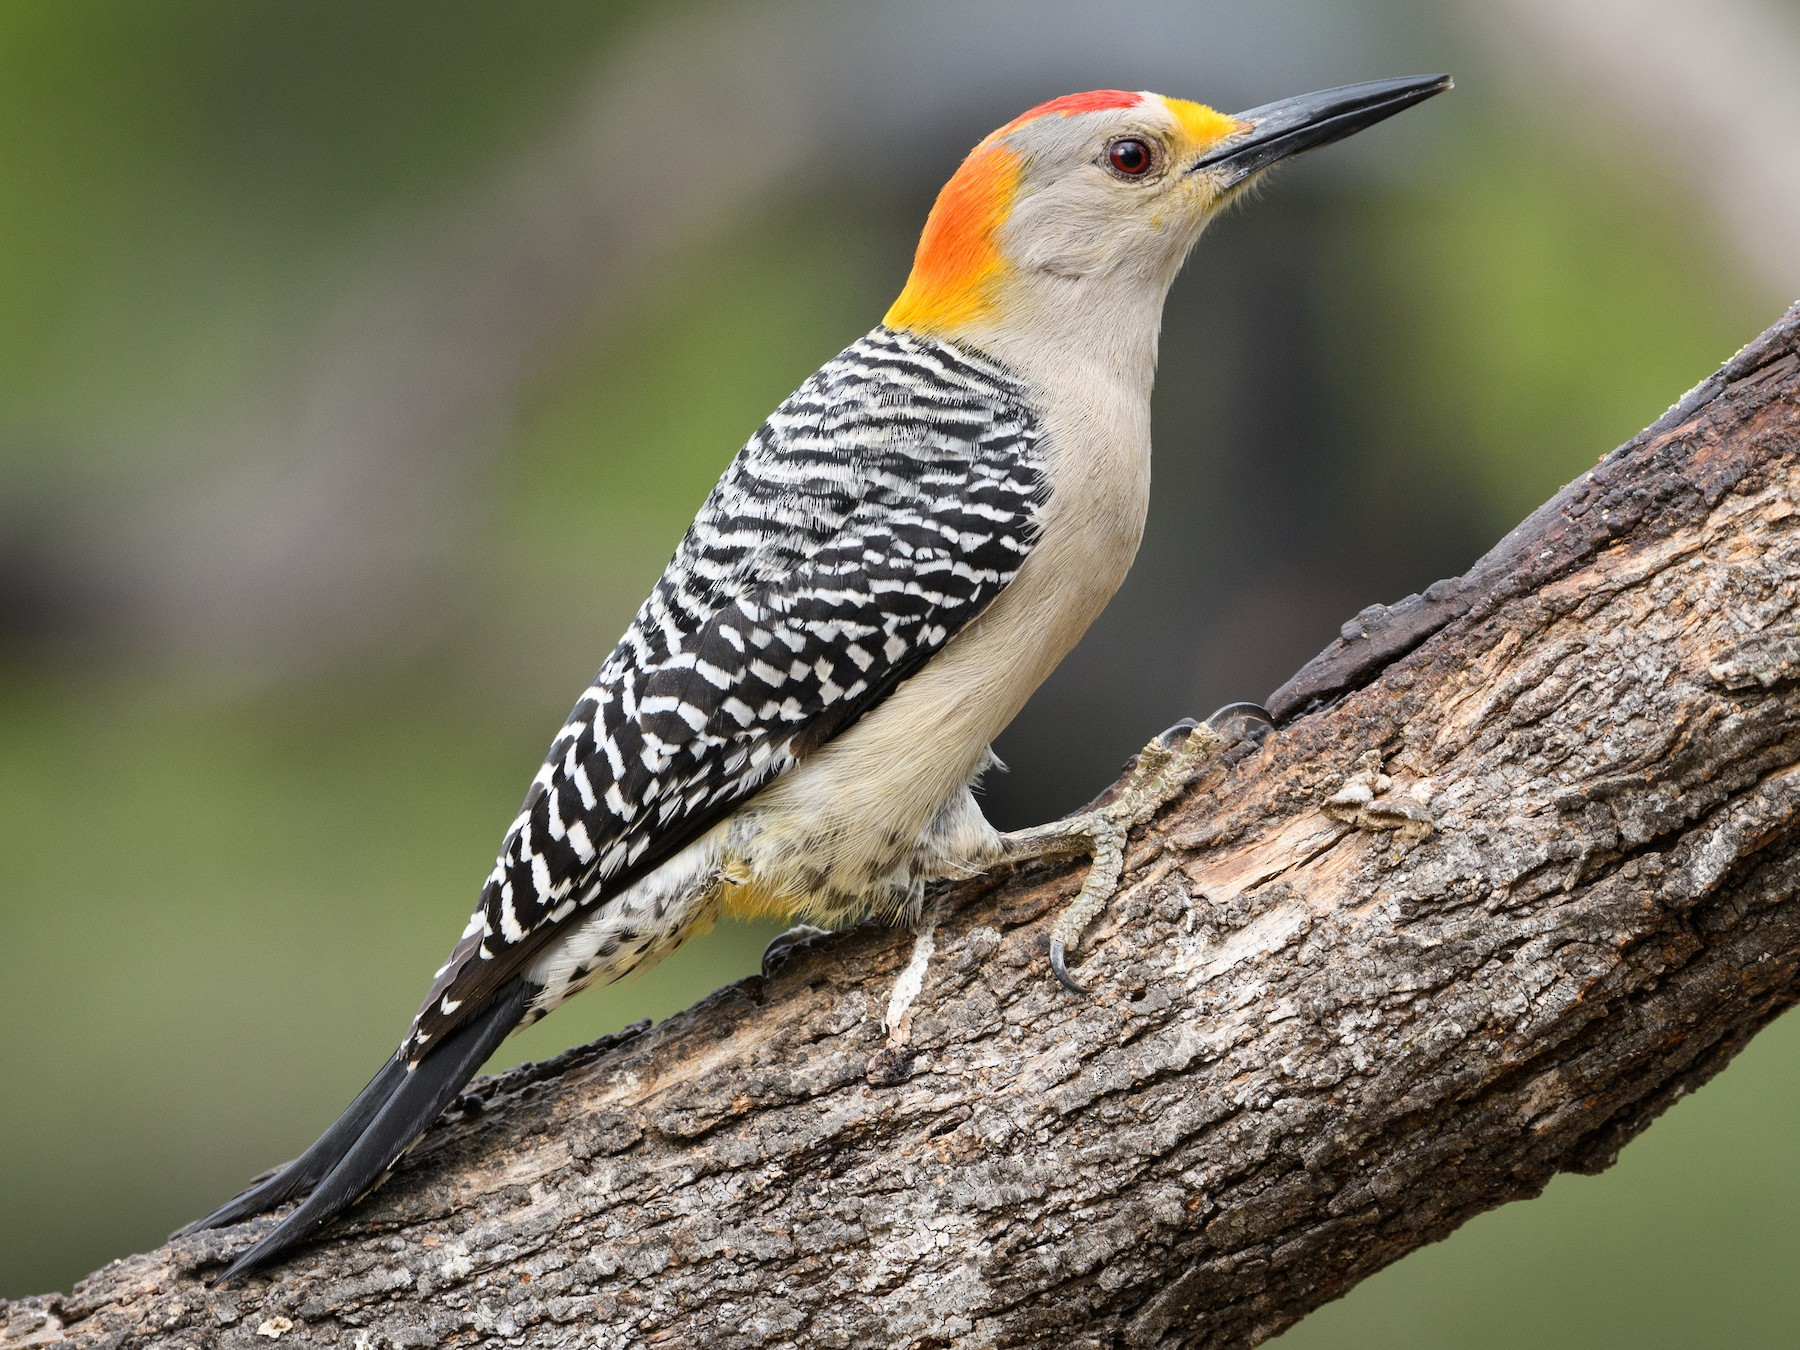 Golden-fronted Woodpecker - Darren Clark